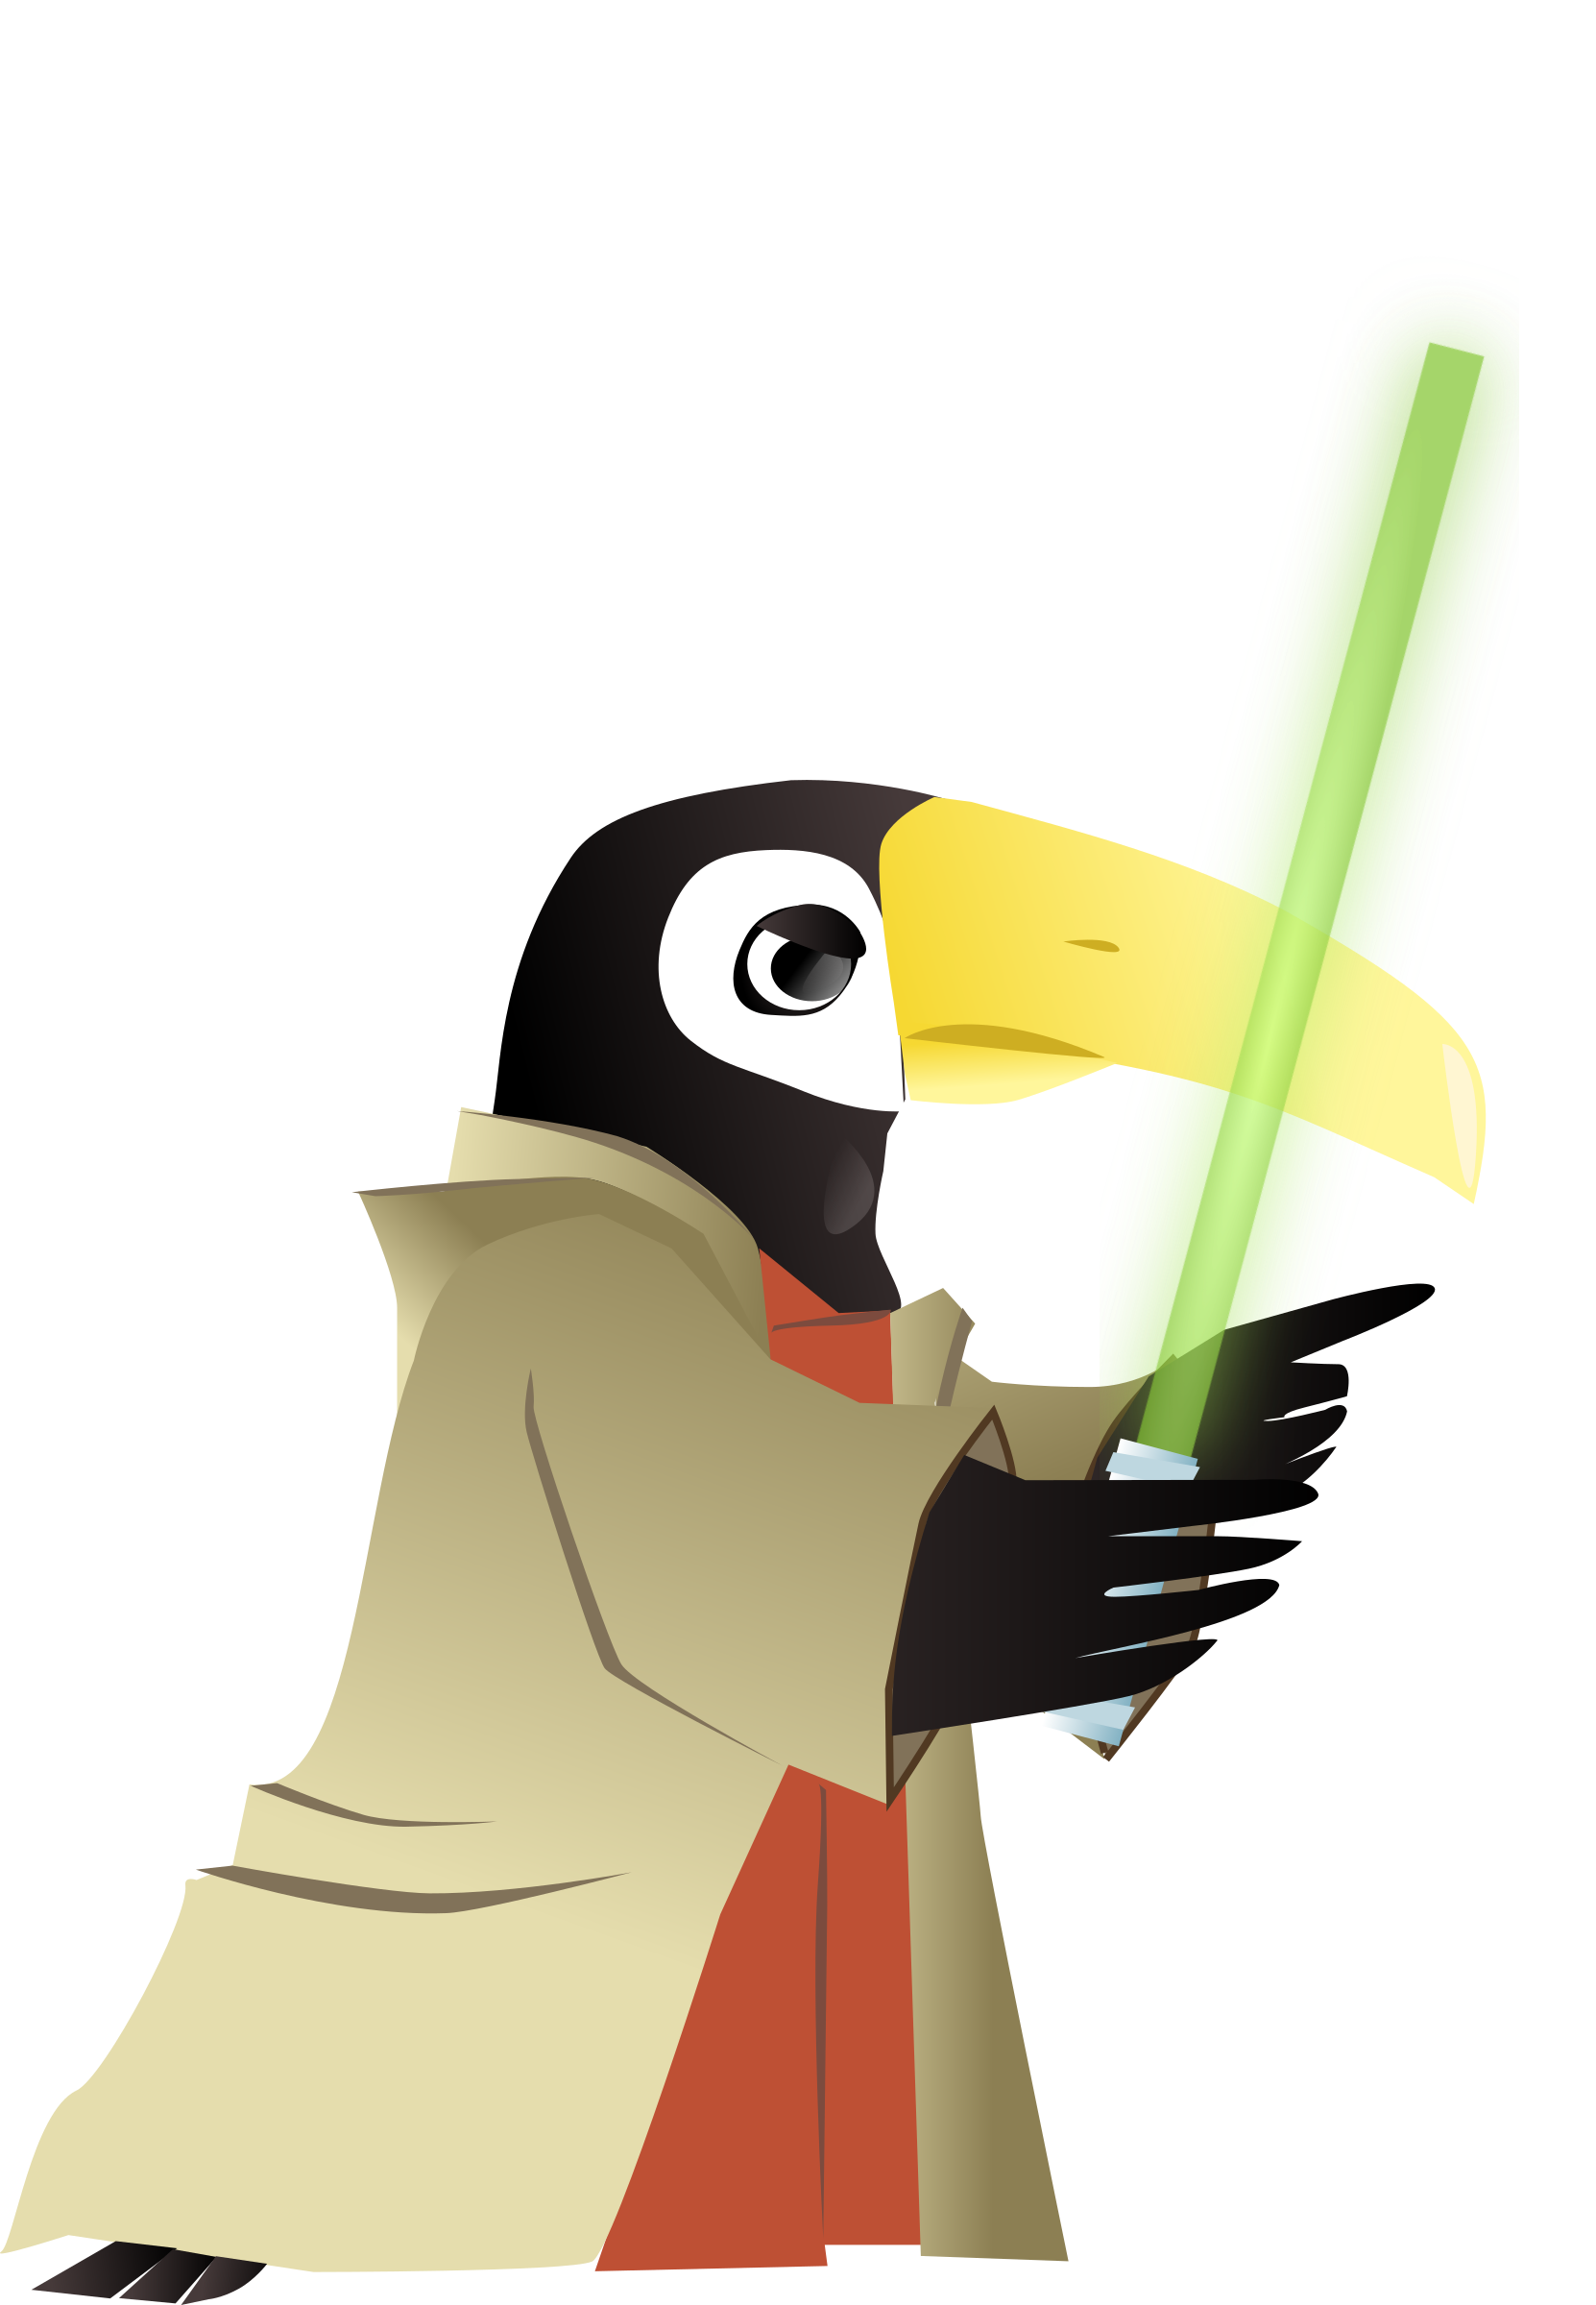 Starwars clipart animated. Toucan jedi master big